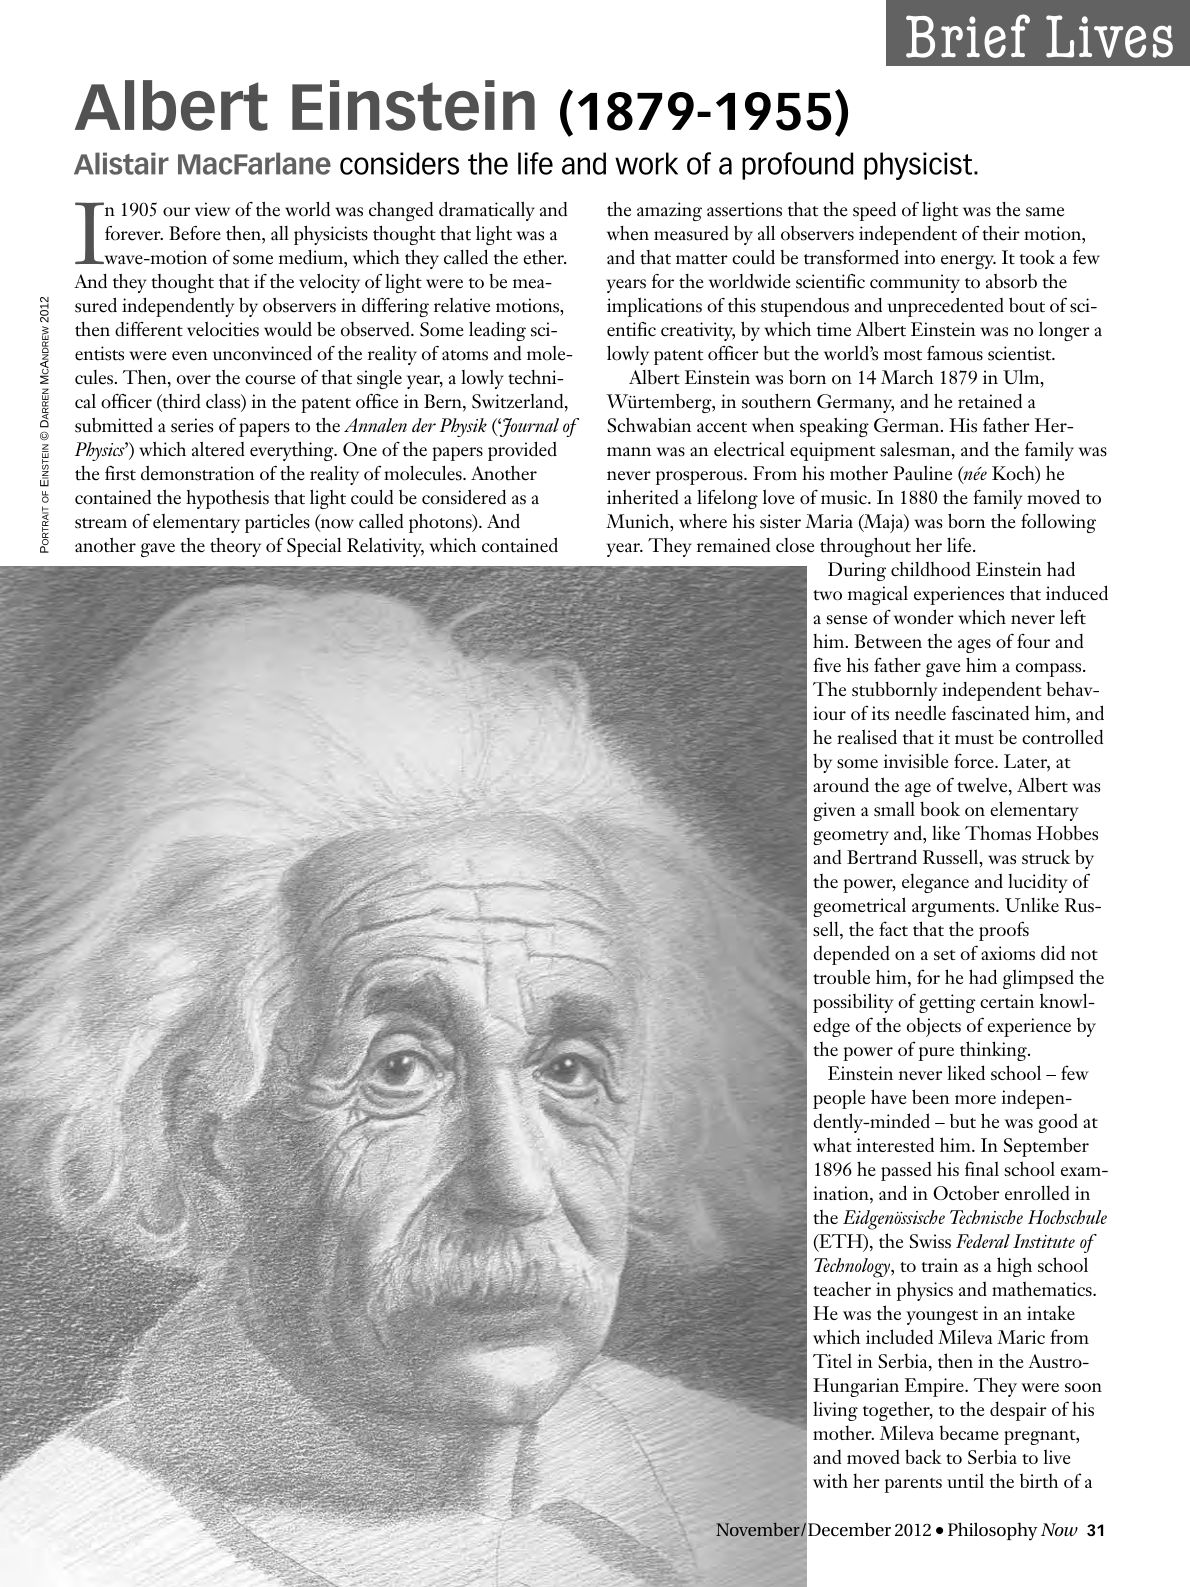 Albert Einstein 1879 1955 Alistair MacFarlane Philosophy Now Philosophy Documentation Center